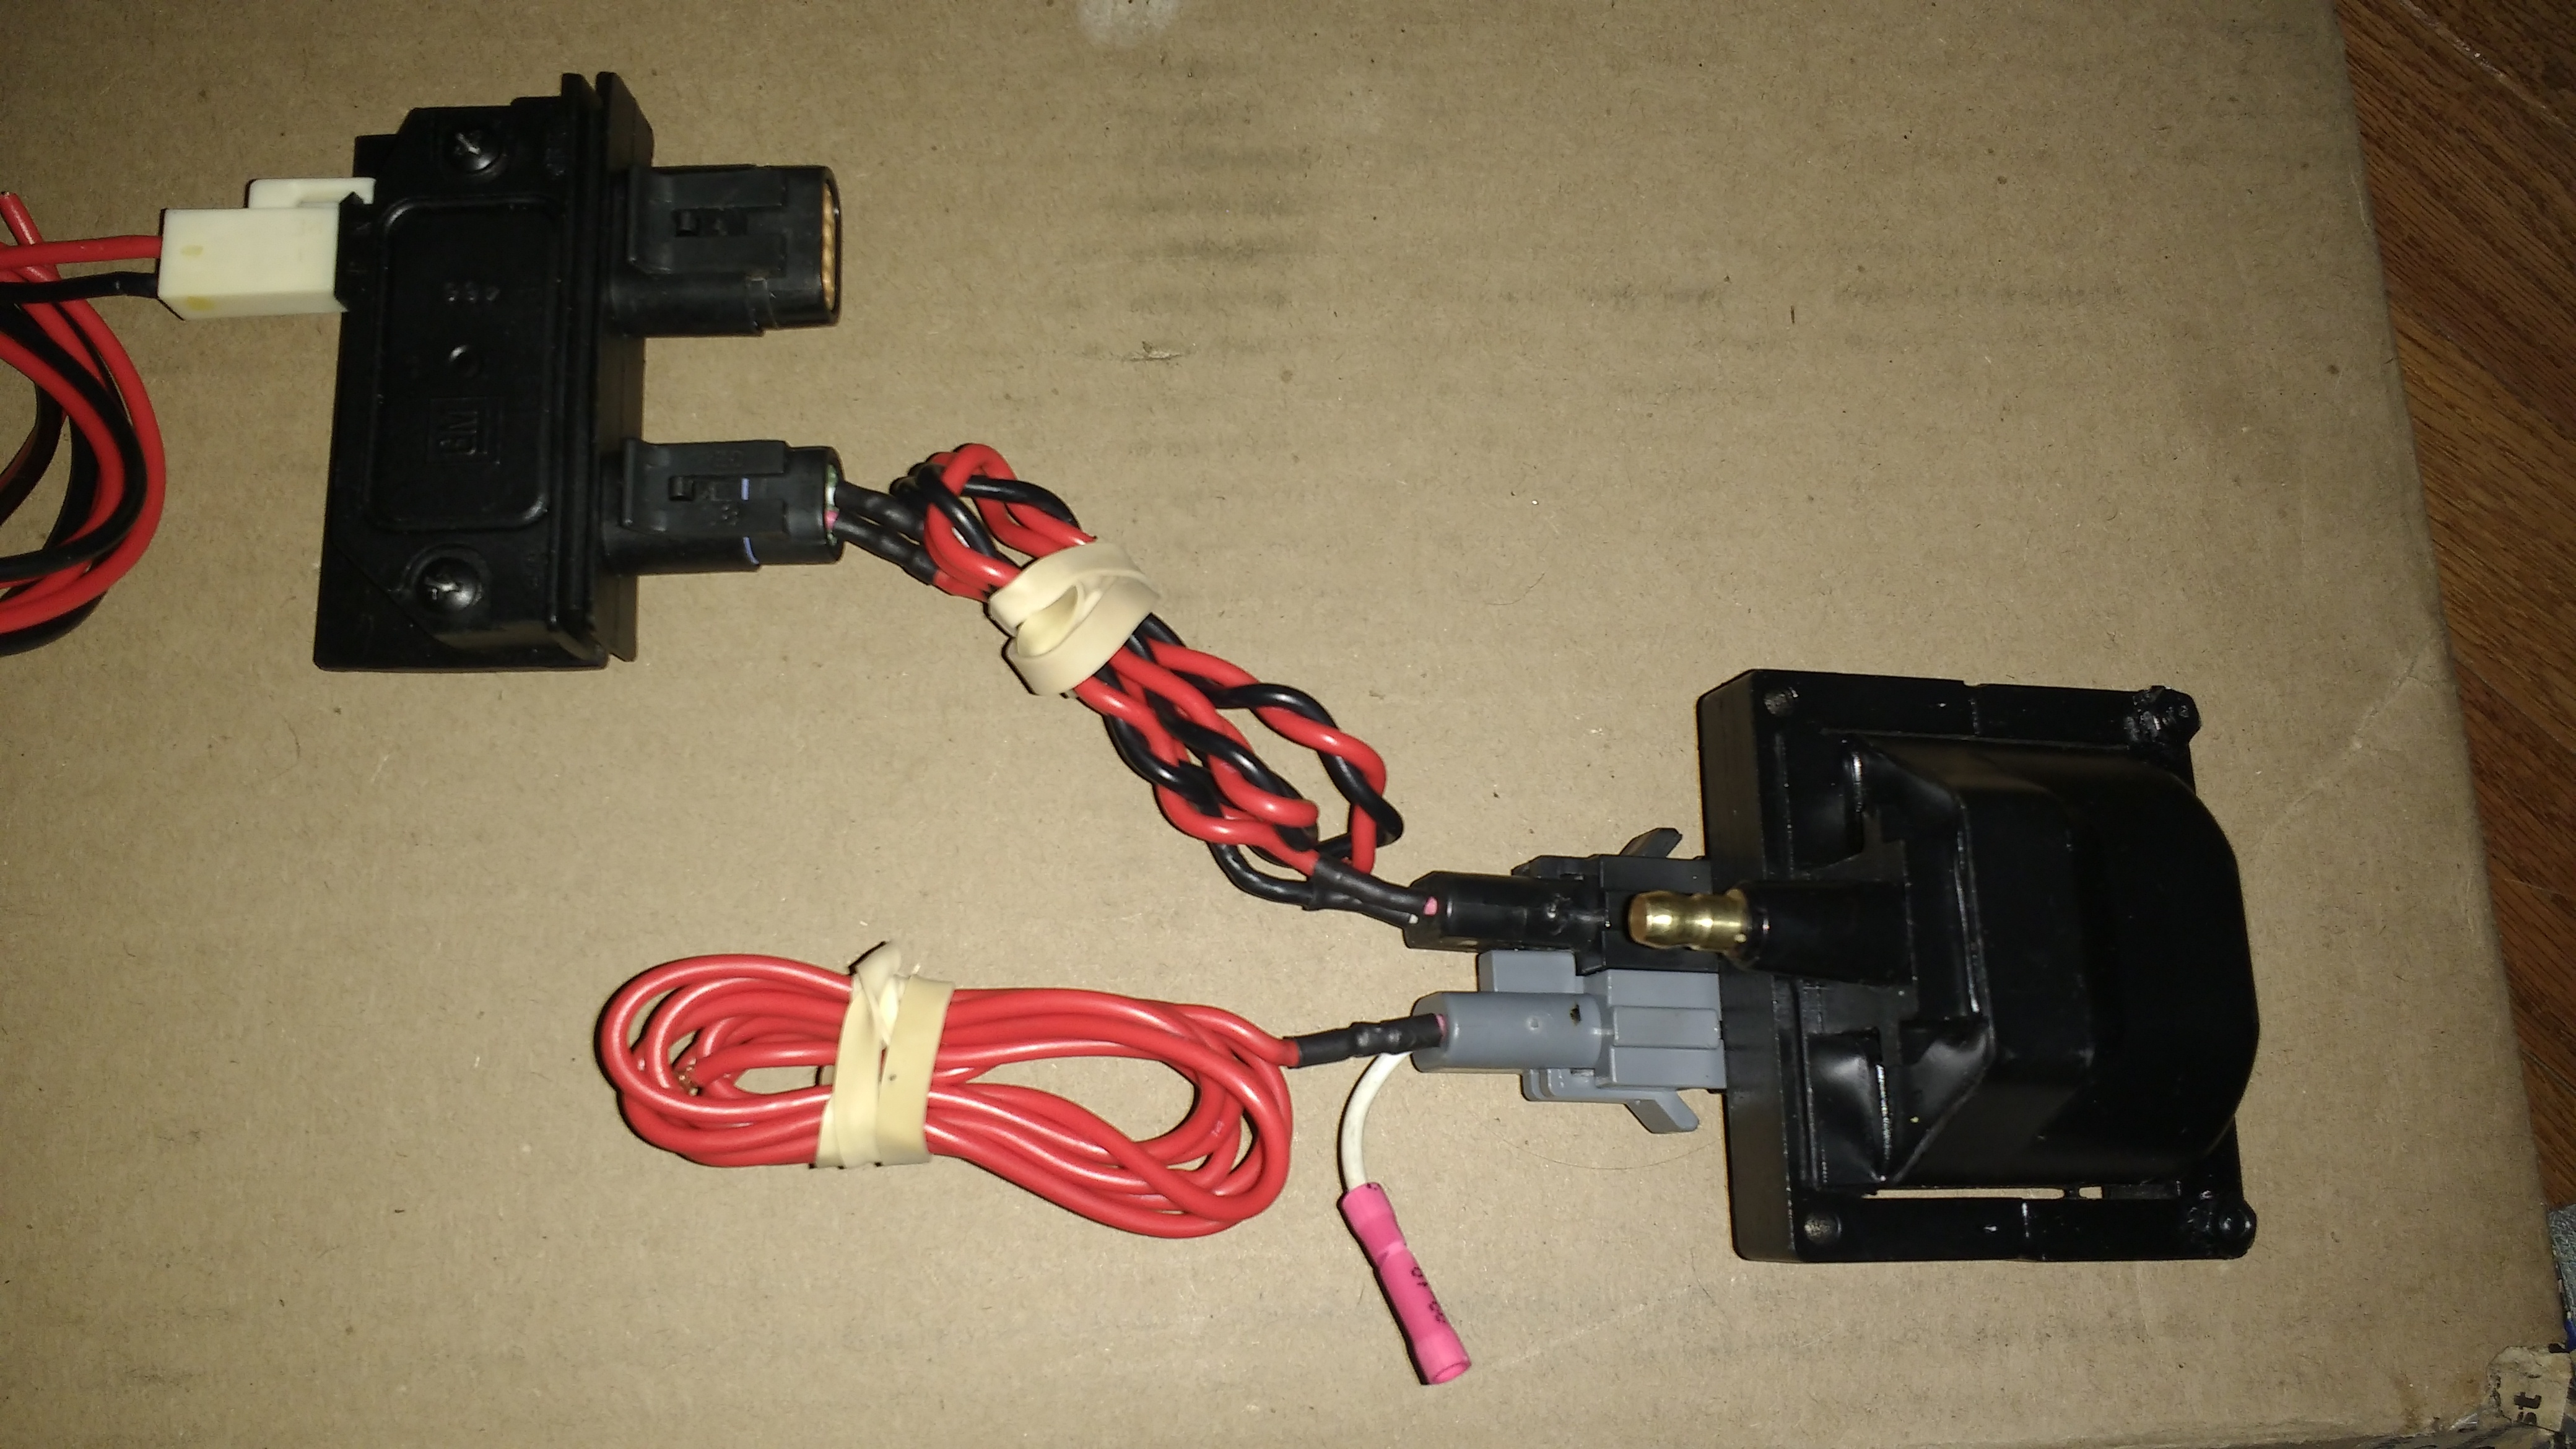 Electronic Ign Hei Ballast Delete Wiring For A Bodies Only Mopar In Gm Img 20160612 212106763